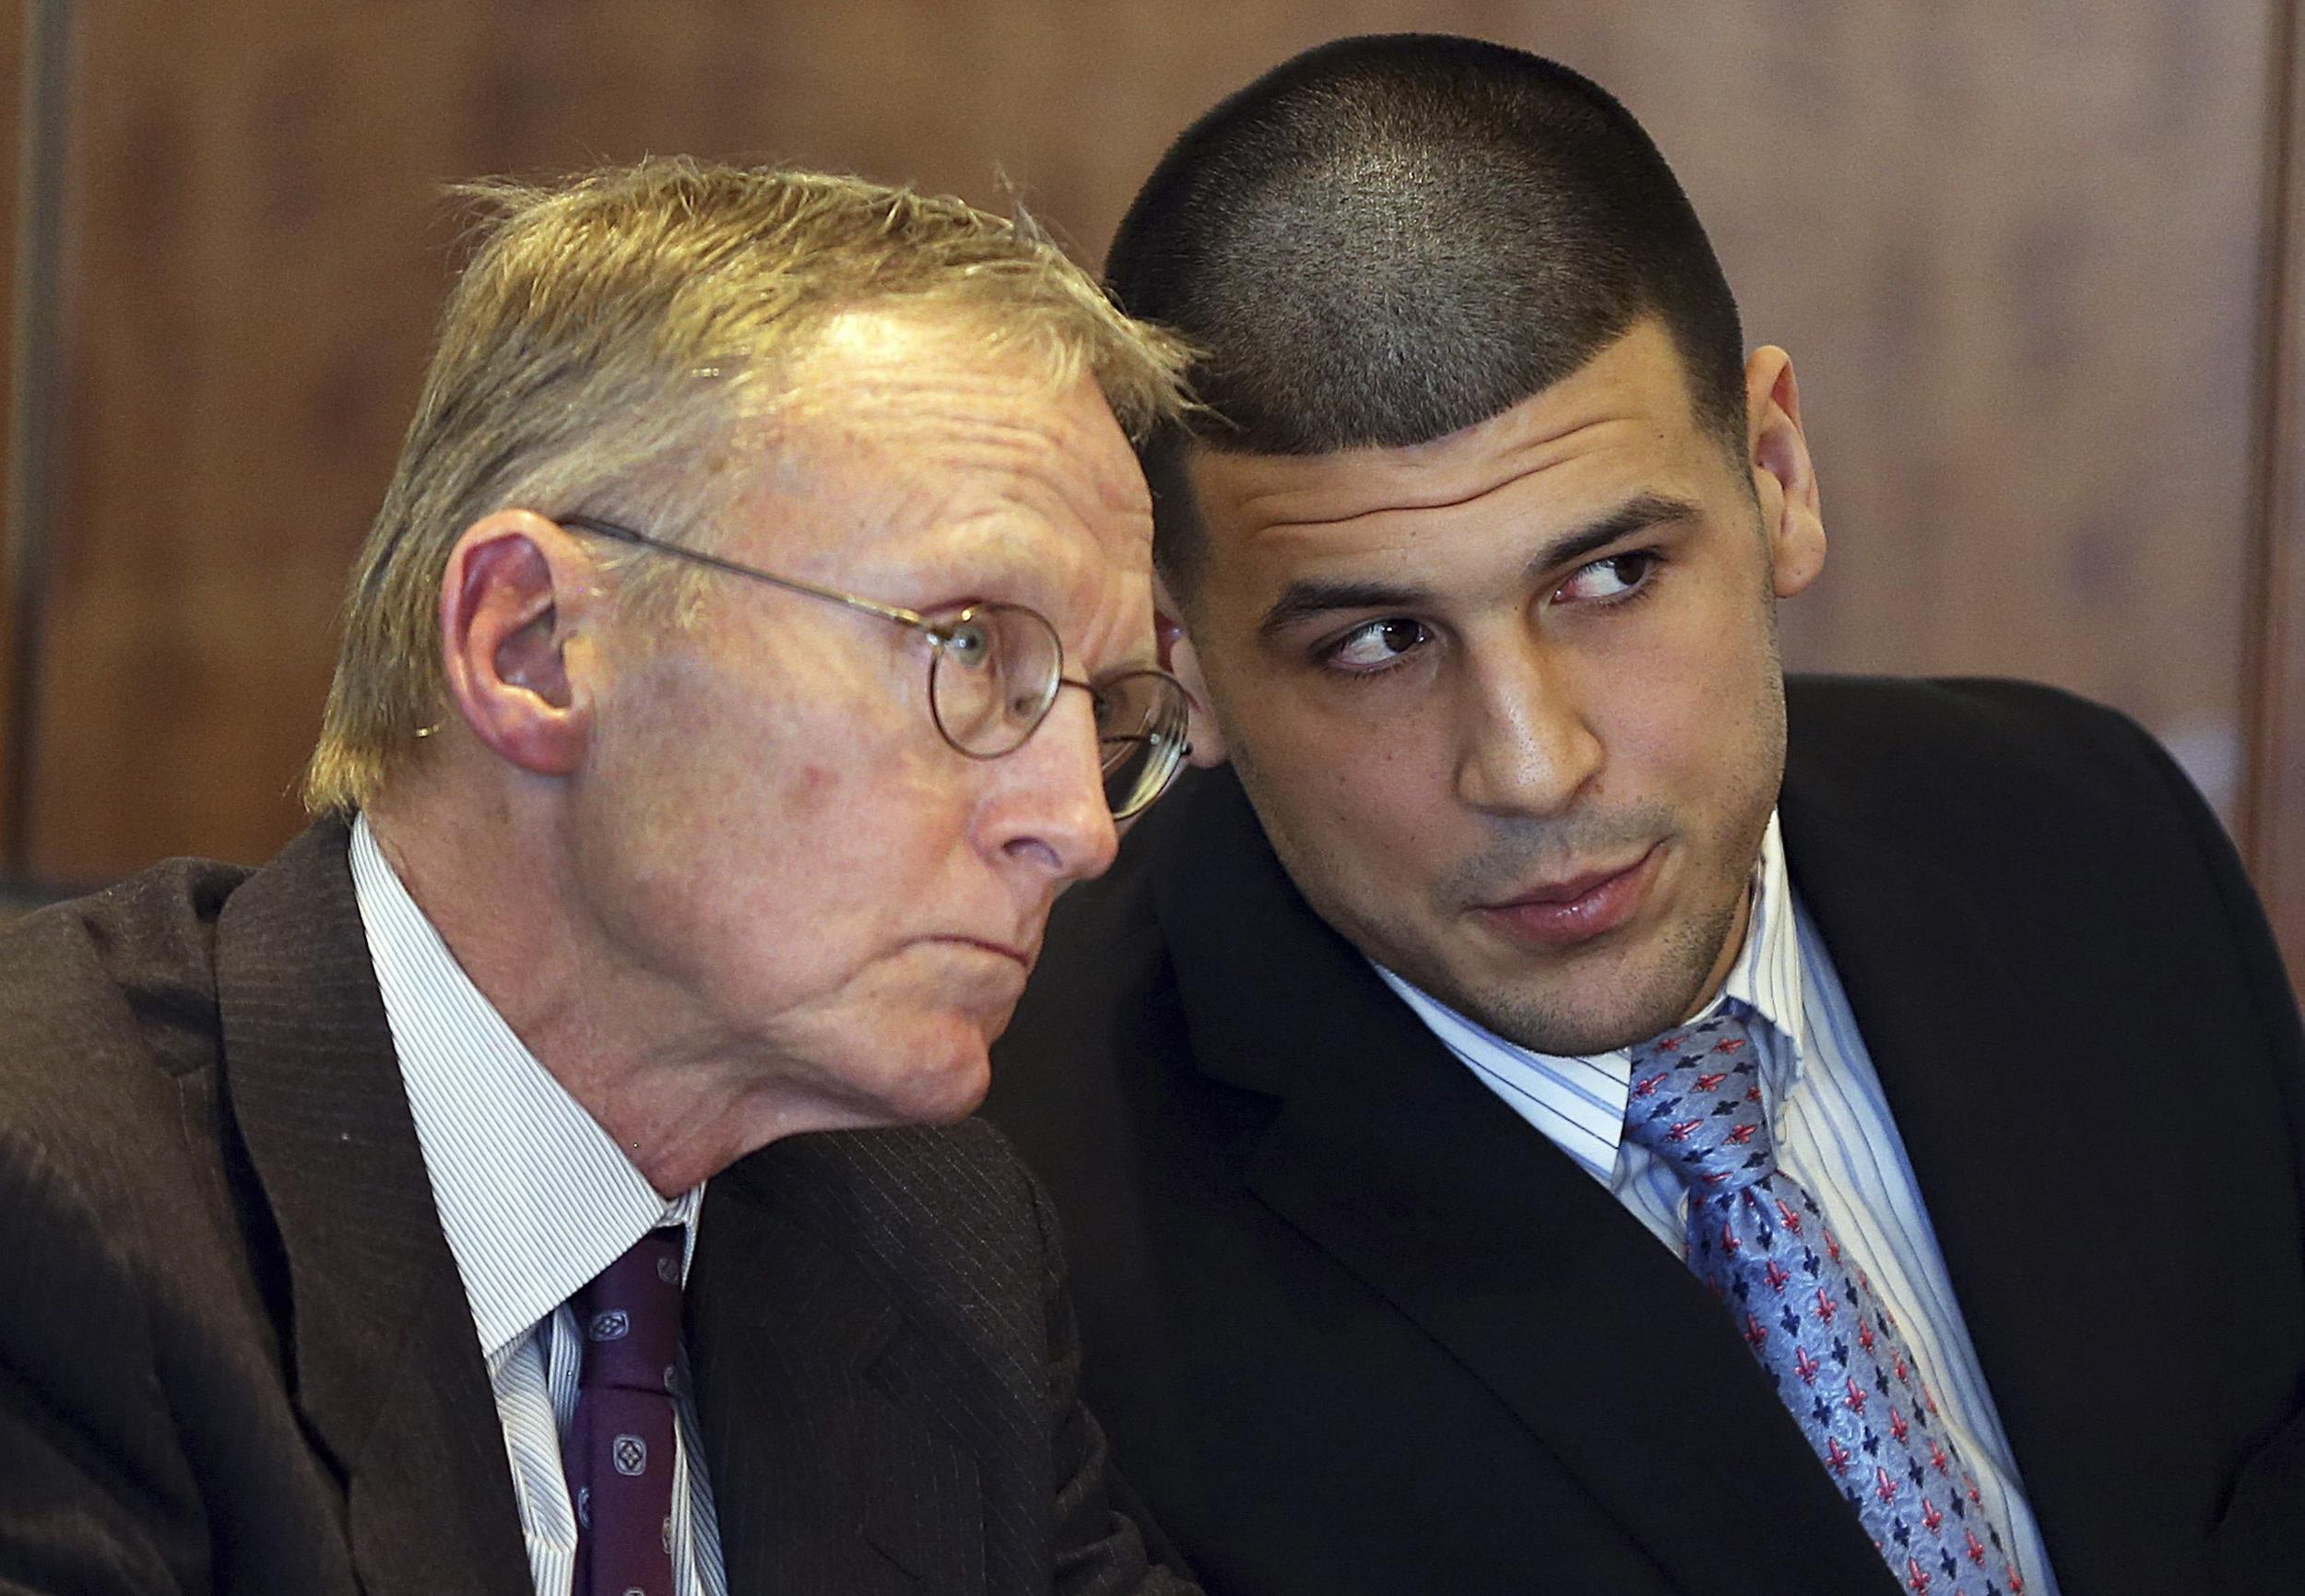 Image: Aaron Hernandez chats with his lawyer Charles Rankin as he appears for a pre-trial hearing at Bristol County Superior Court in Fall River